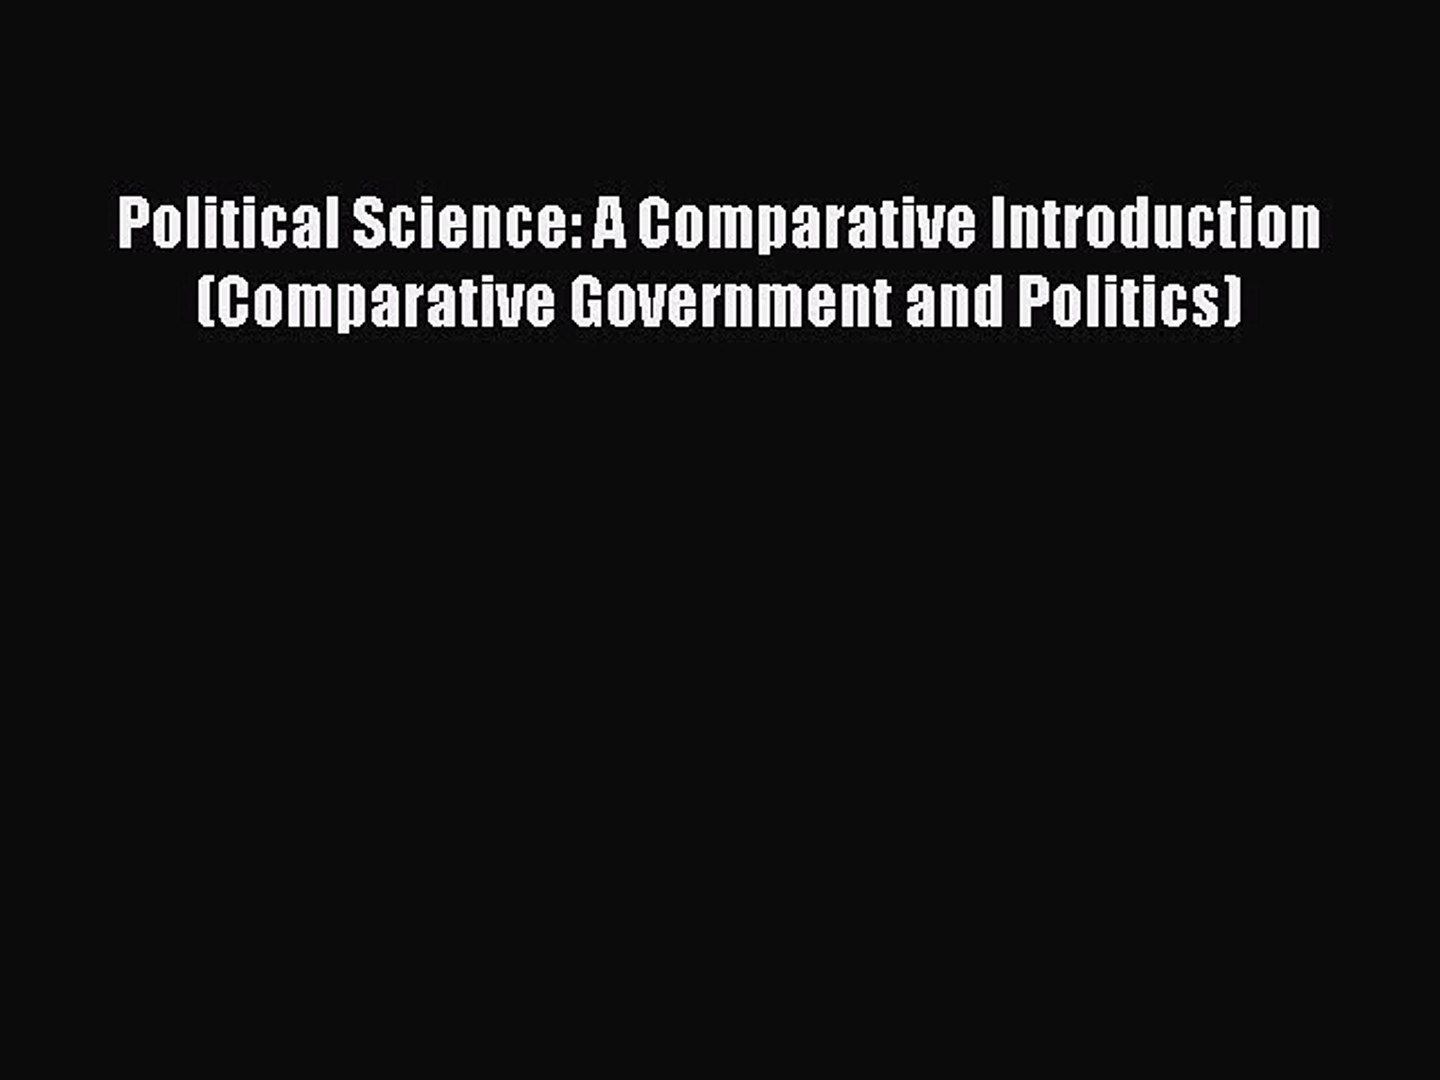 Download Political Science: A Comparative Introduction (Comparative Government and Politics)